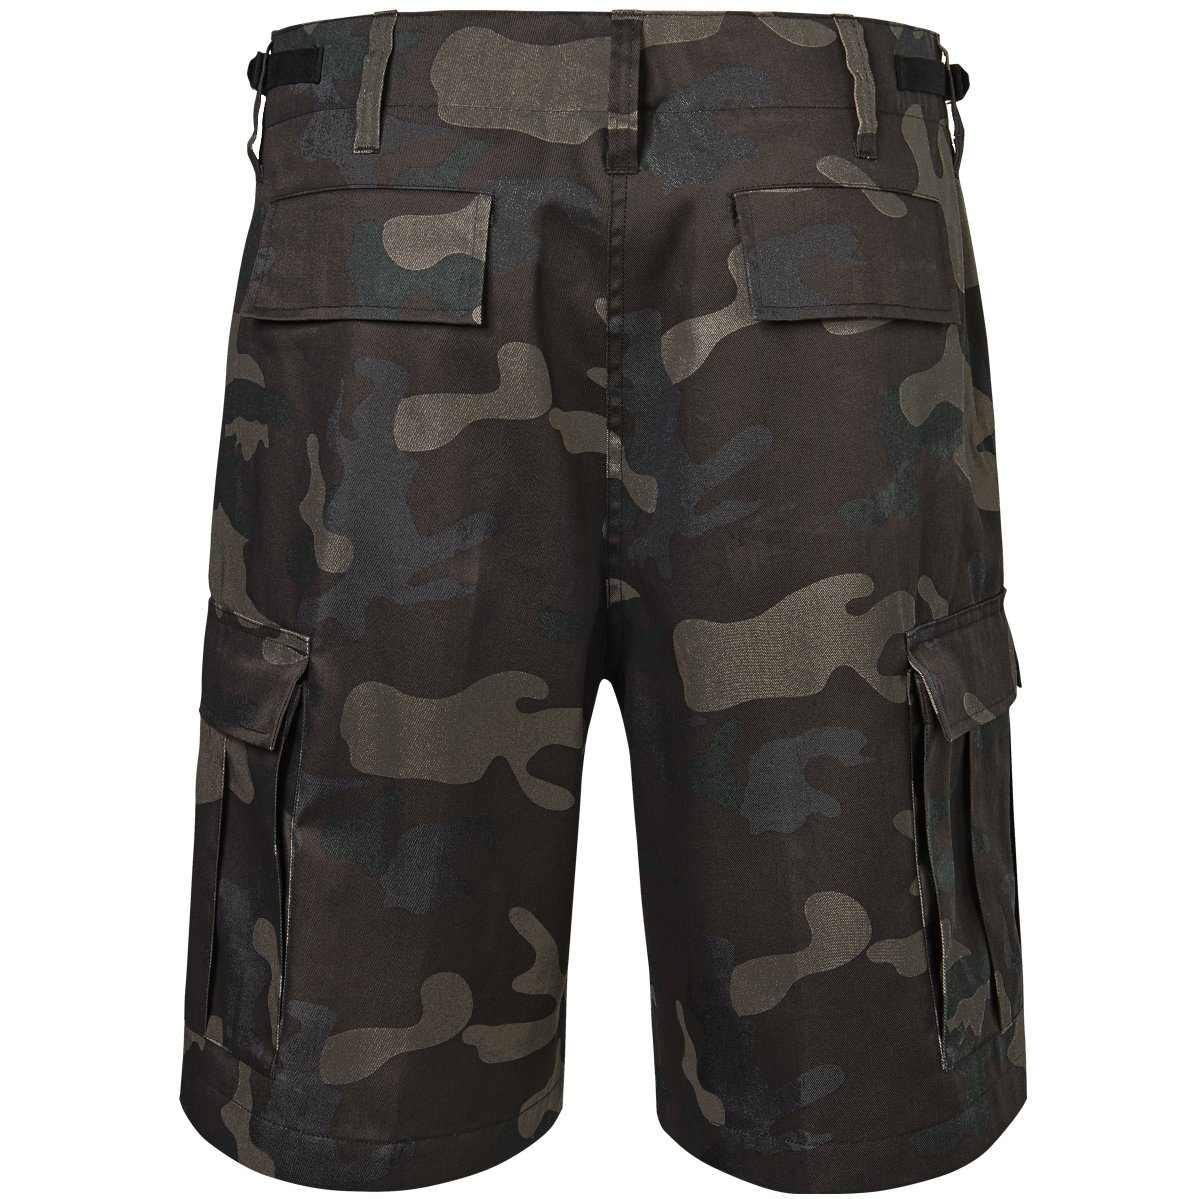 Brandit Men's US Ranger Shorts Dark Camo Size 7XL by Brandit (Image #2)